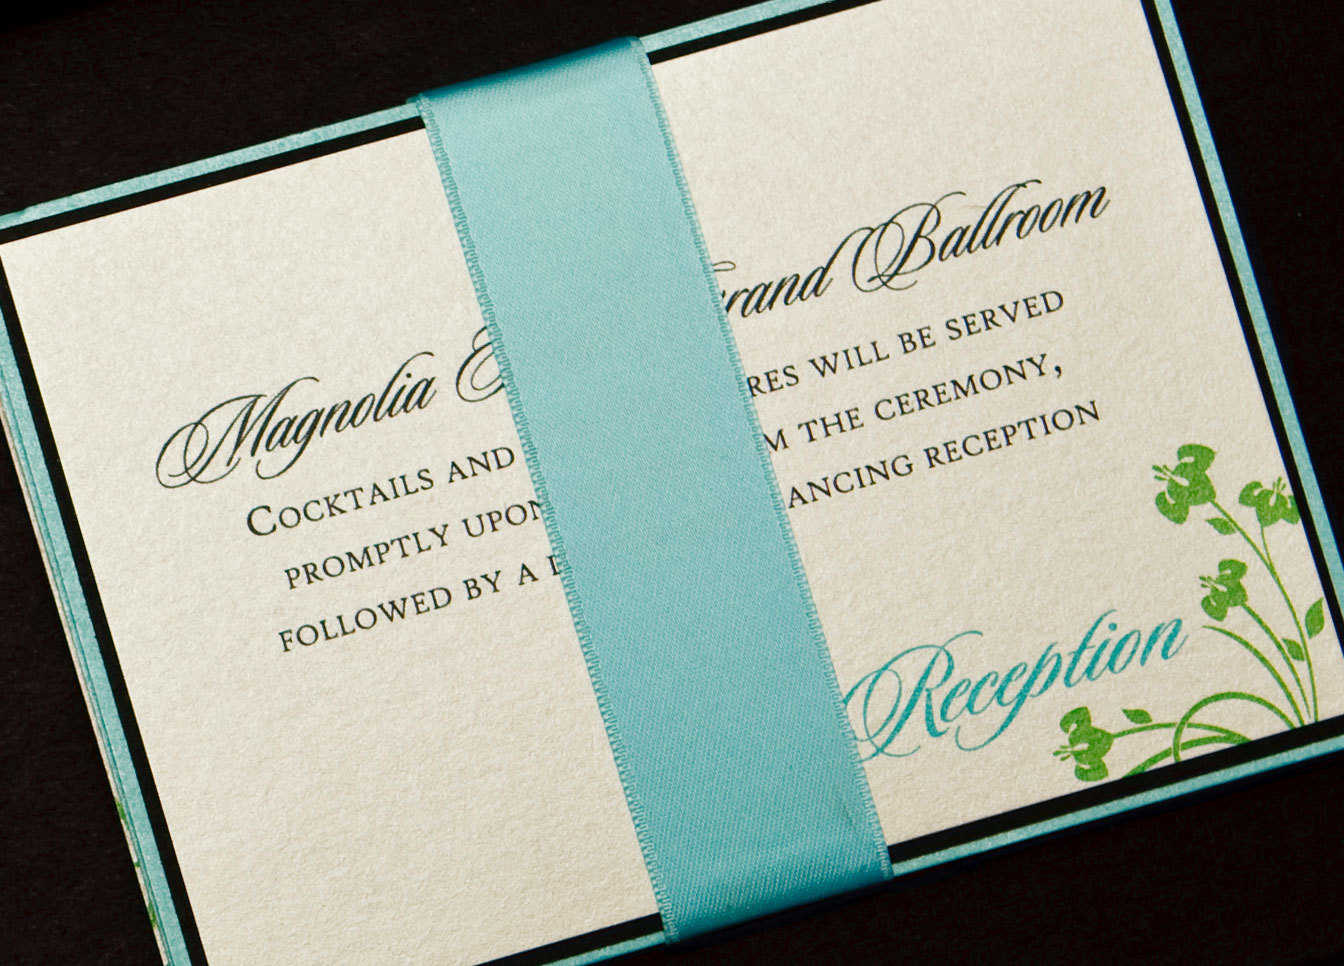 Flowers & Decor, Stationery, green, black, invitation, Invitations, Flower, Teal, Proskalo inc